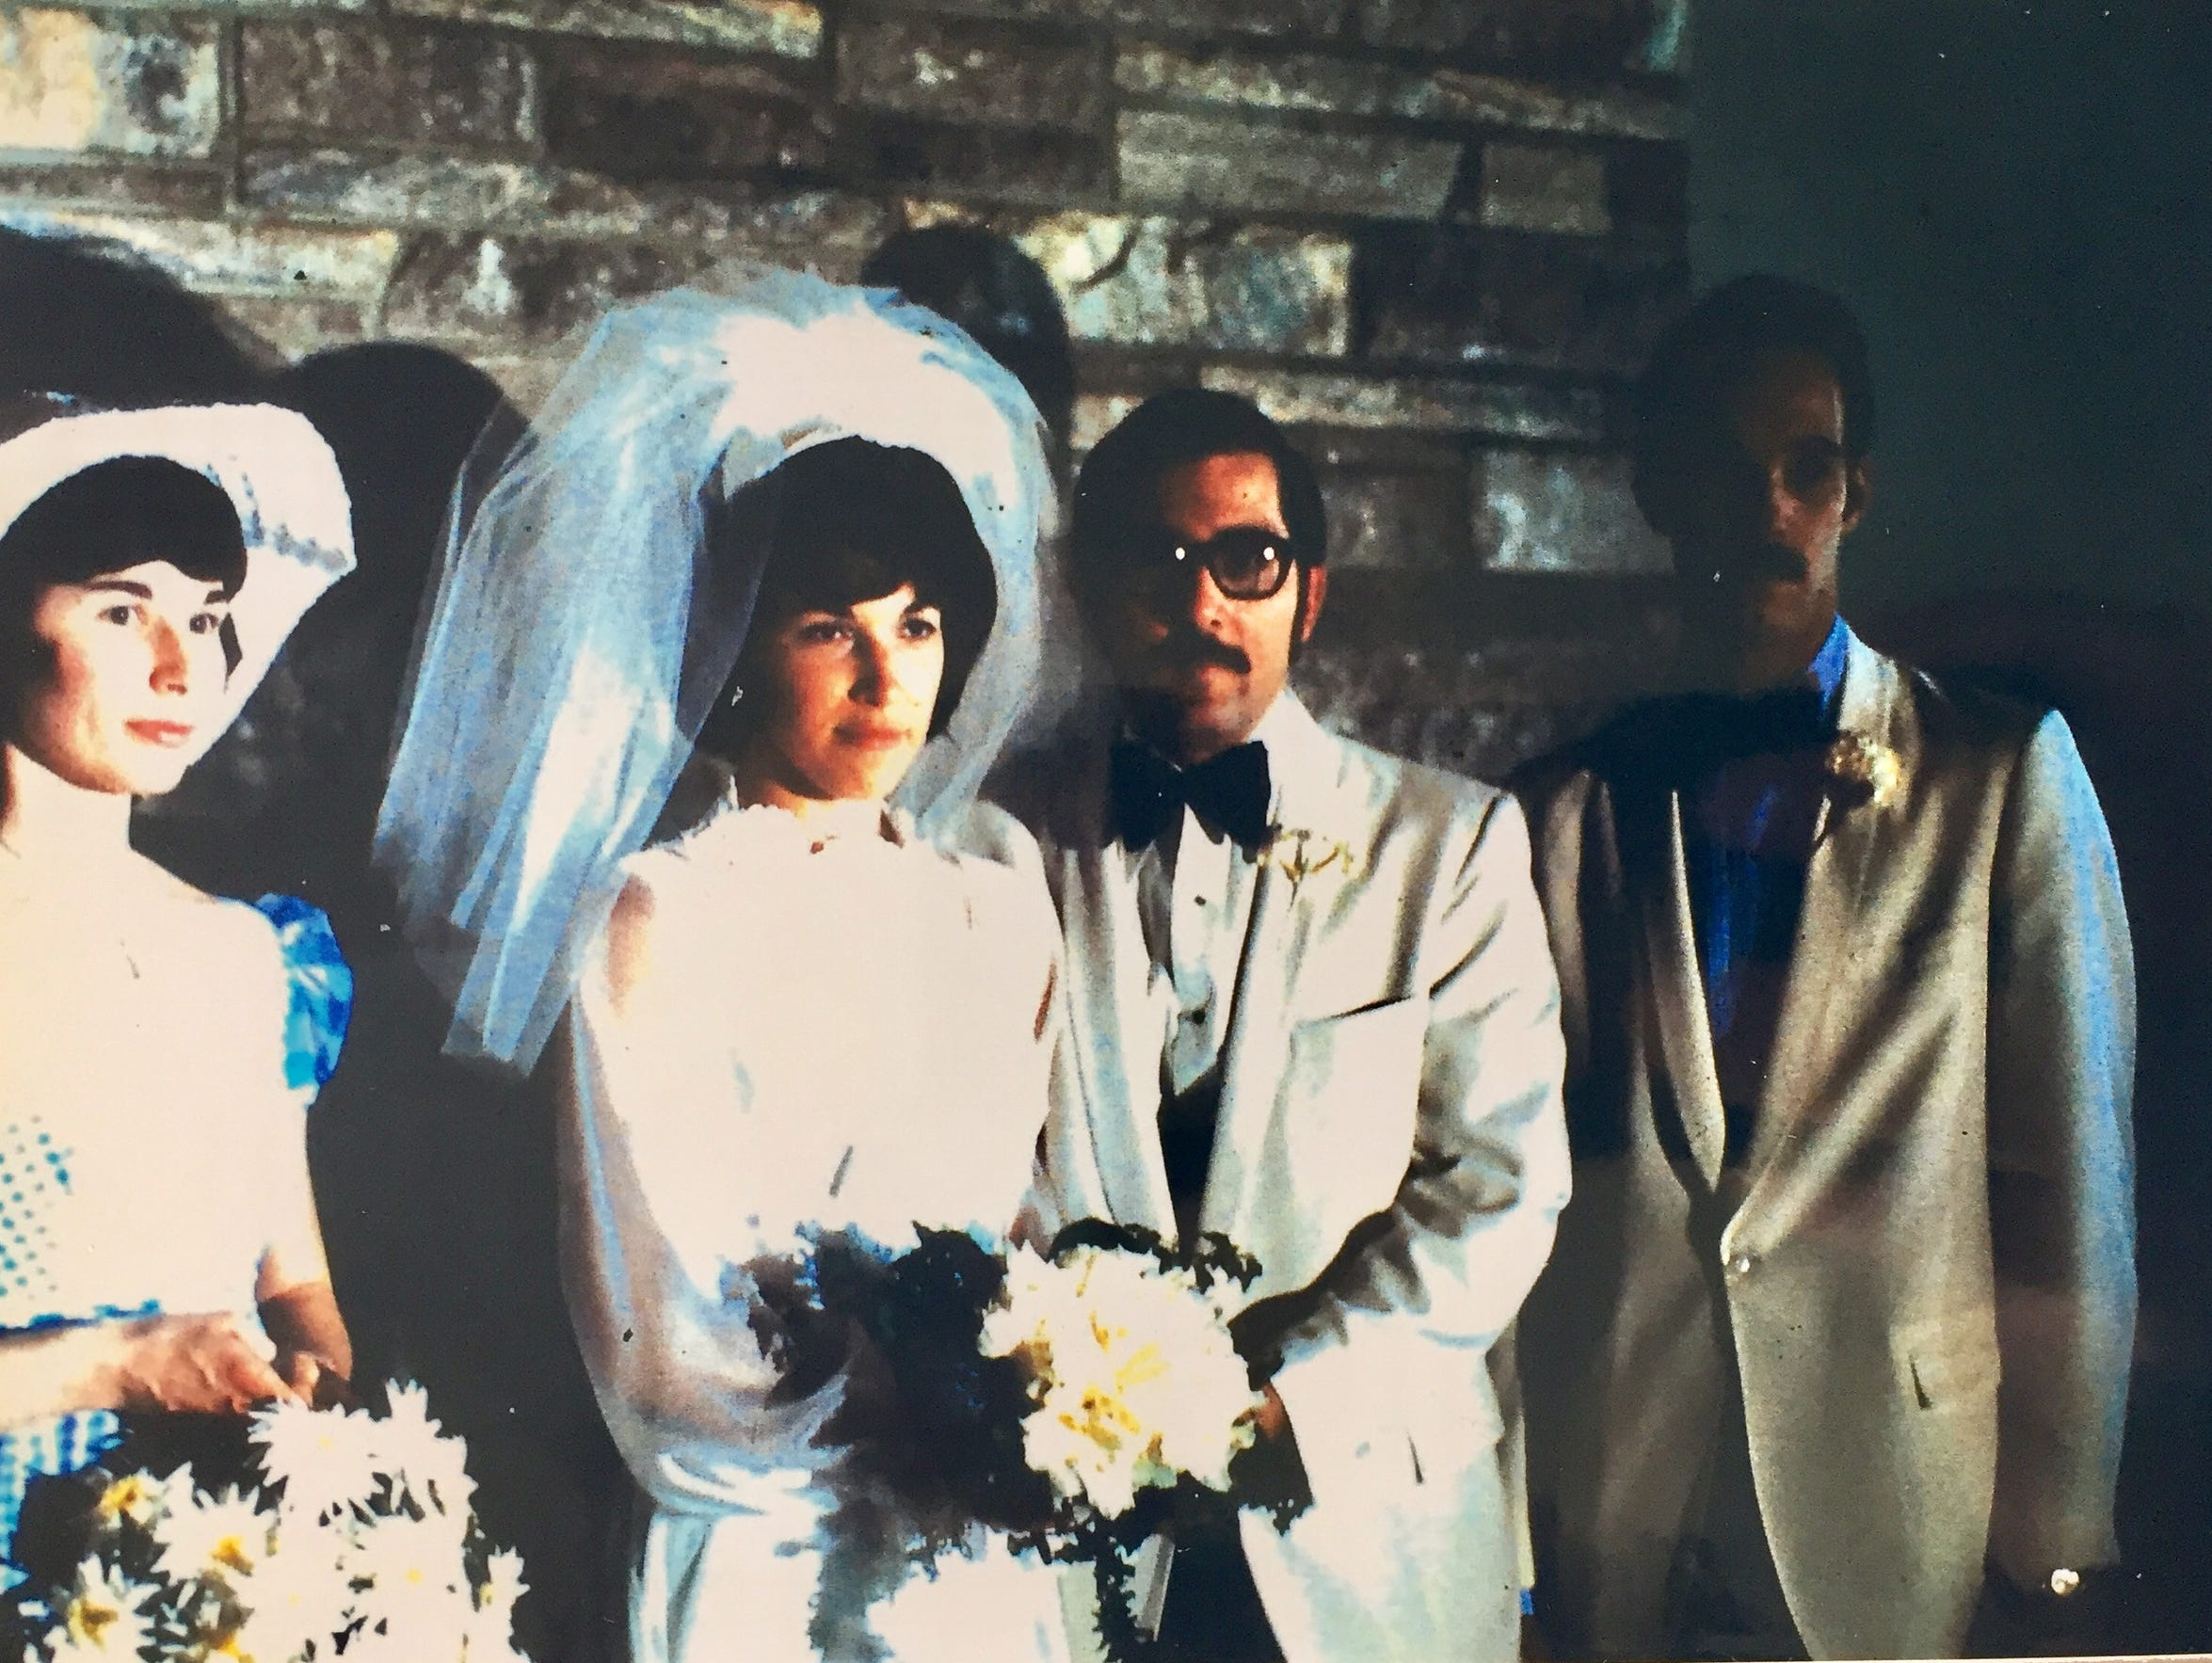 David and Pat Heese on their wedding day in 1972.